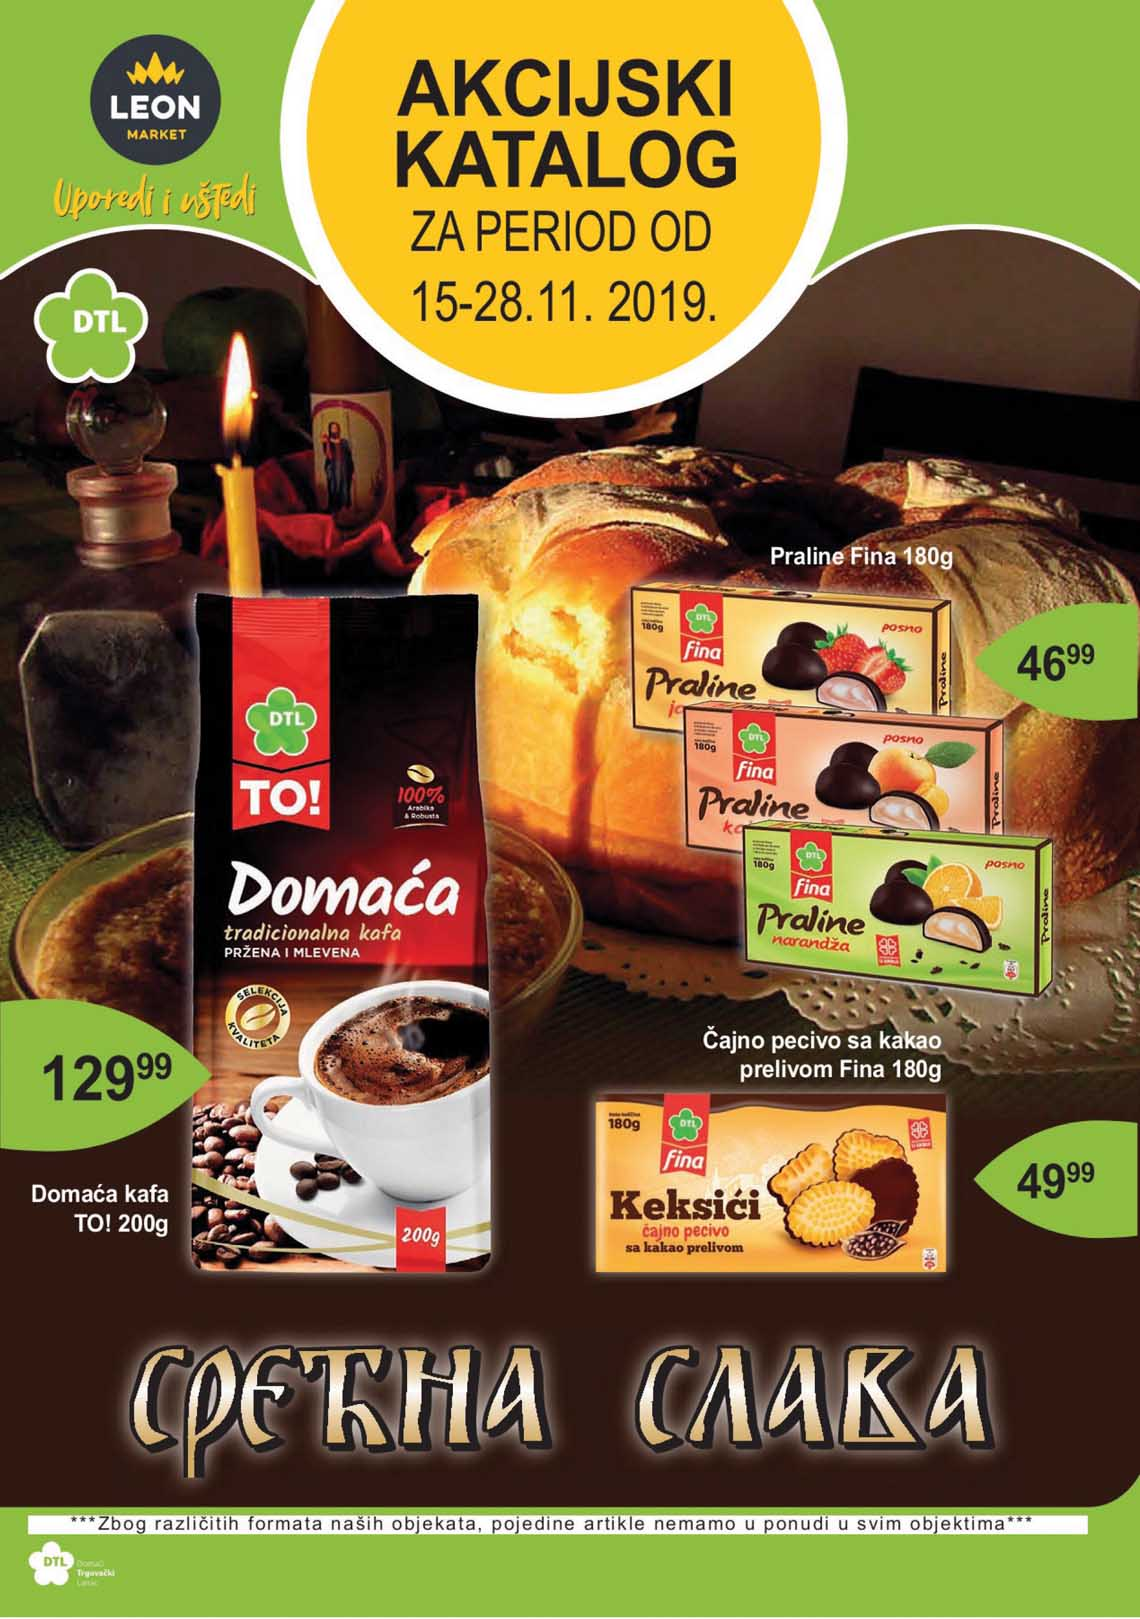 LEON MARKET Katalog - Super akcija do 28.11.2019.